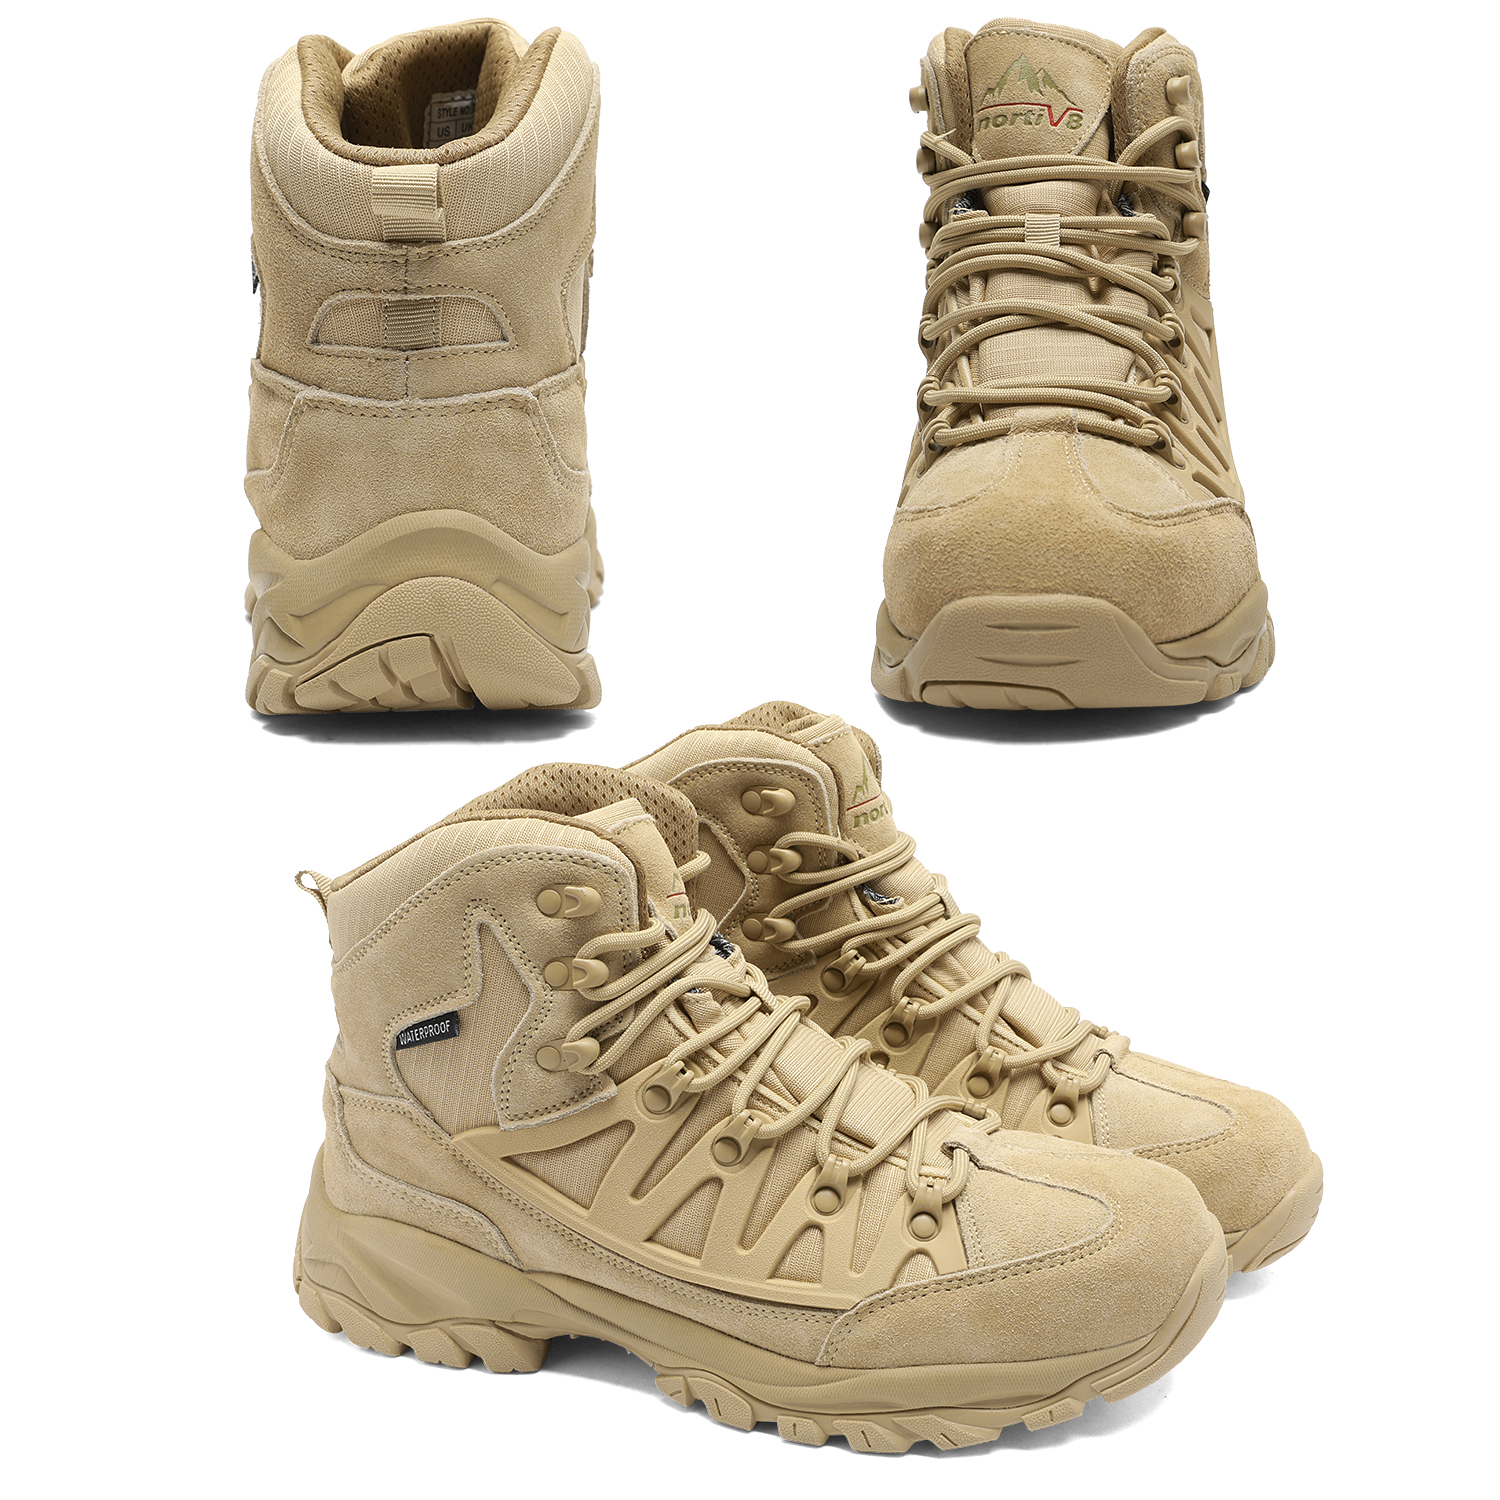 NORTIV-8-Men-039-s-Ankle-Waterproof-Hiking-Boots-Lightweight-Backpacking-Work-Shoes thumbnail 45